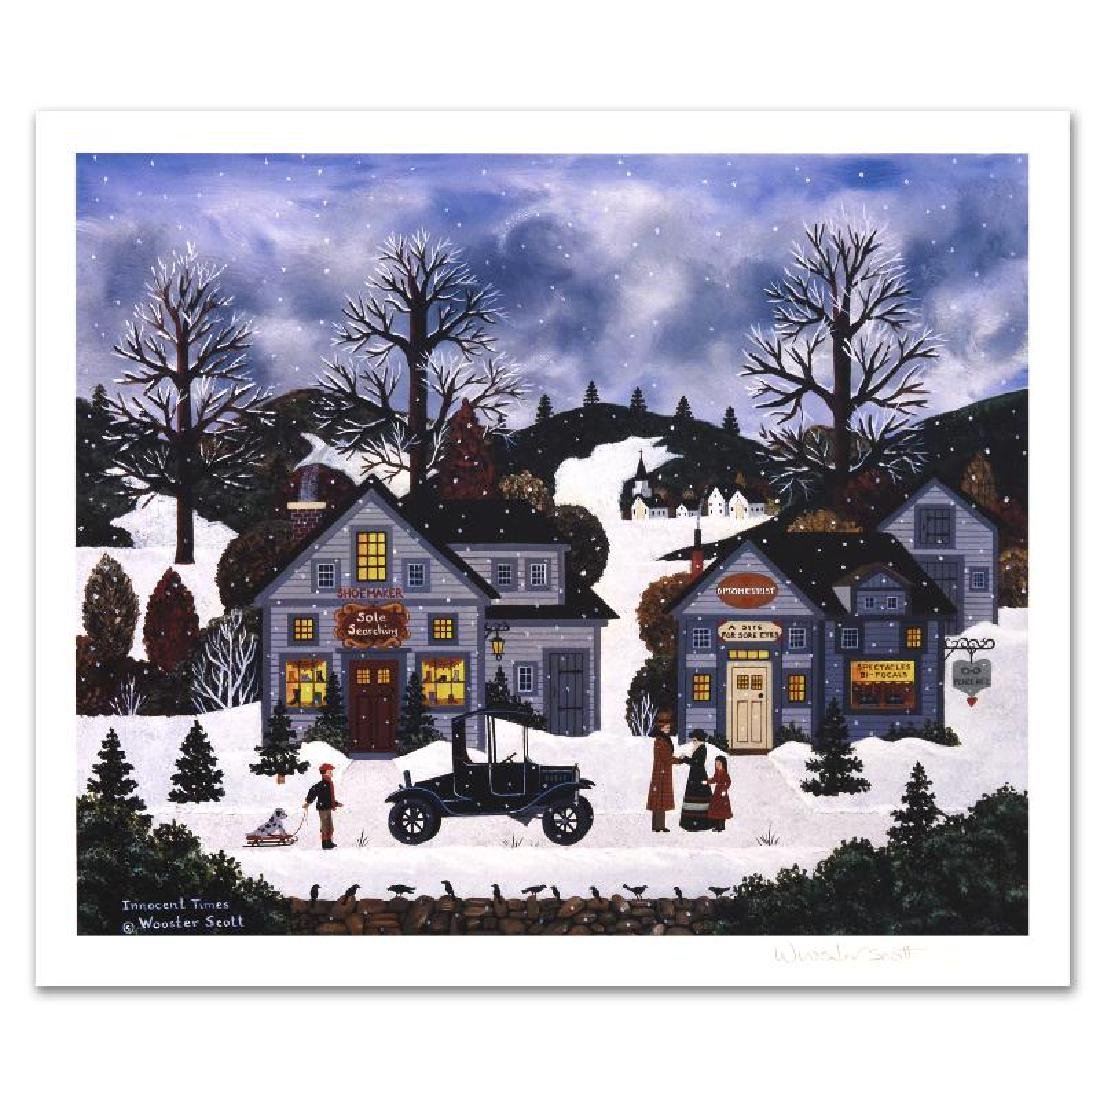 Innocent Times Limited Edition Lithograph by Jane